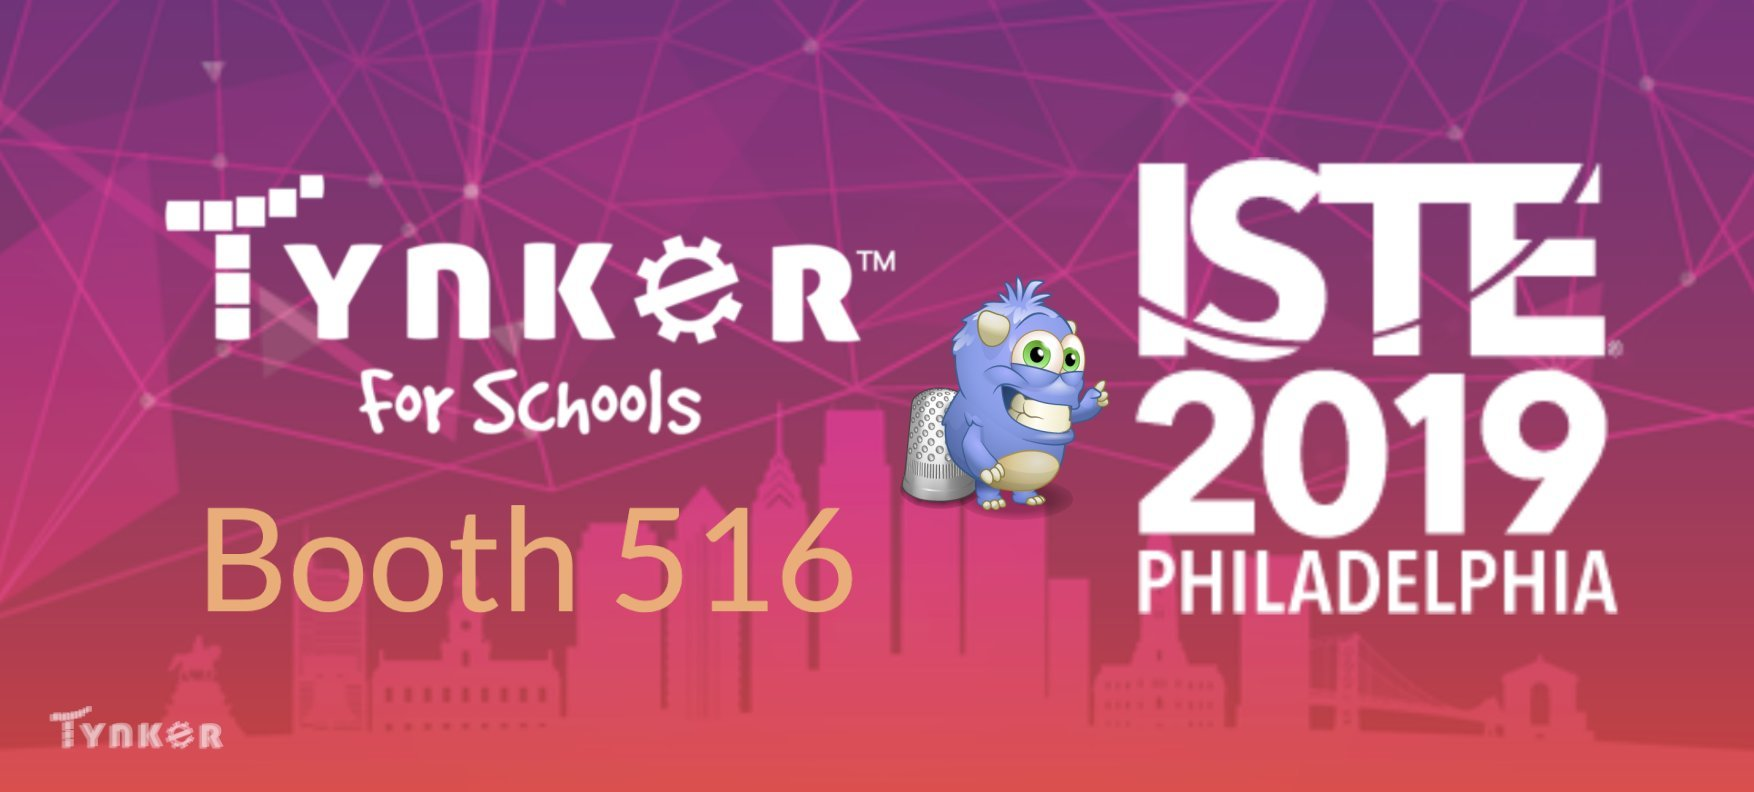 Tynker at ISTE19: Preview Tynker's Micro:bit Courses and Tynker in Espanol!